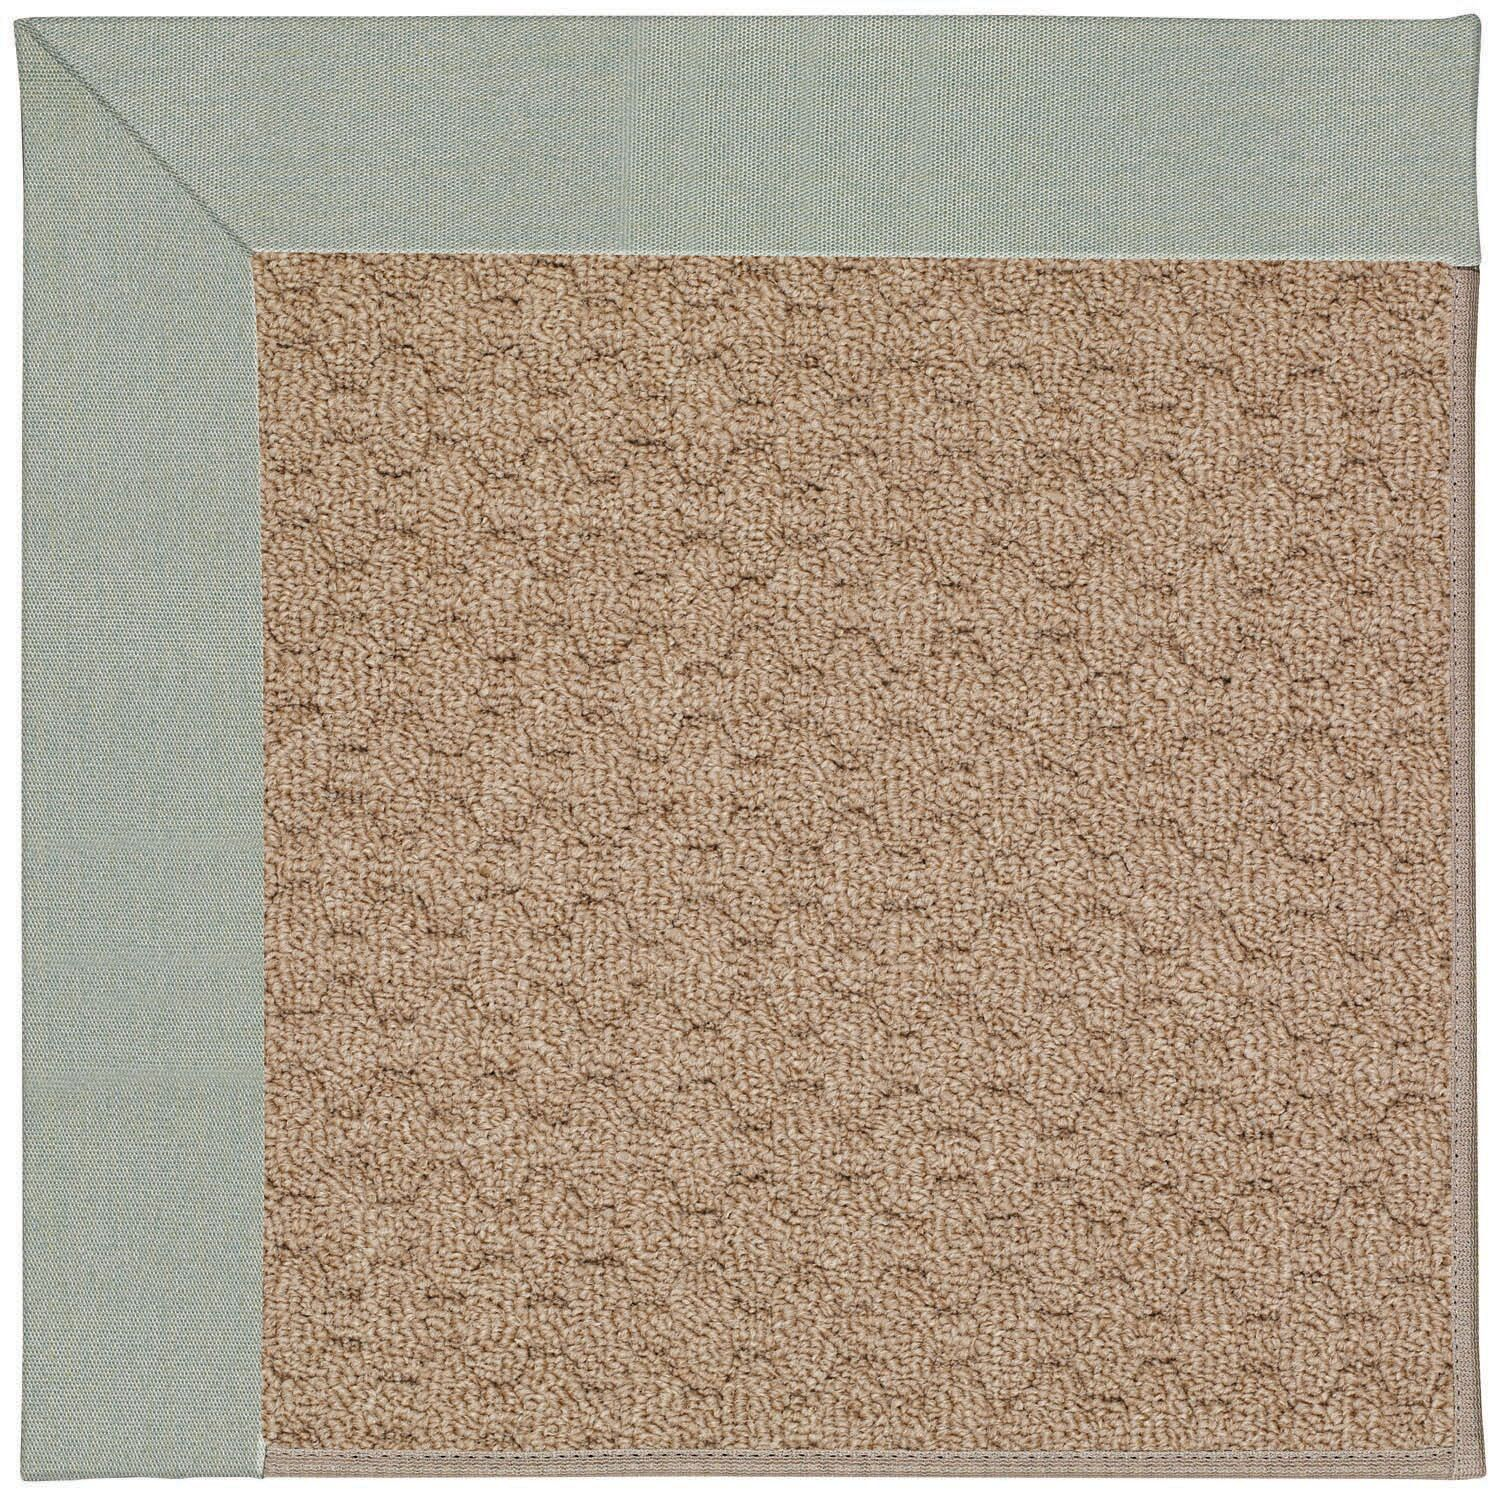 Lisle Machine Tufted Marine Blue and Beige Indoor/Outdoor Area Rug Rug Size: Square 4'